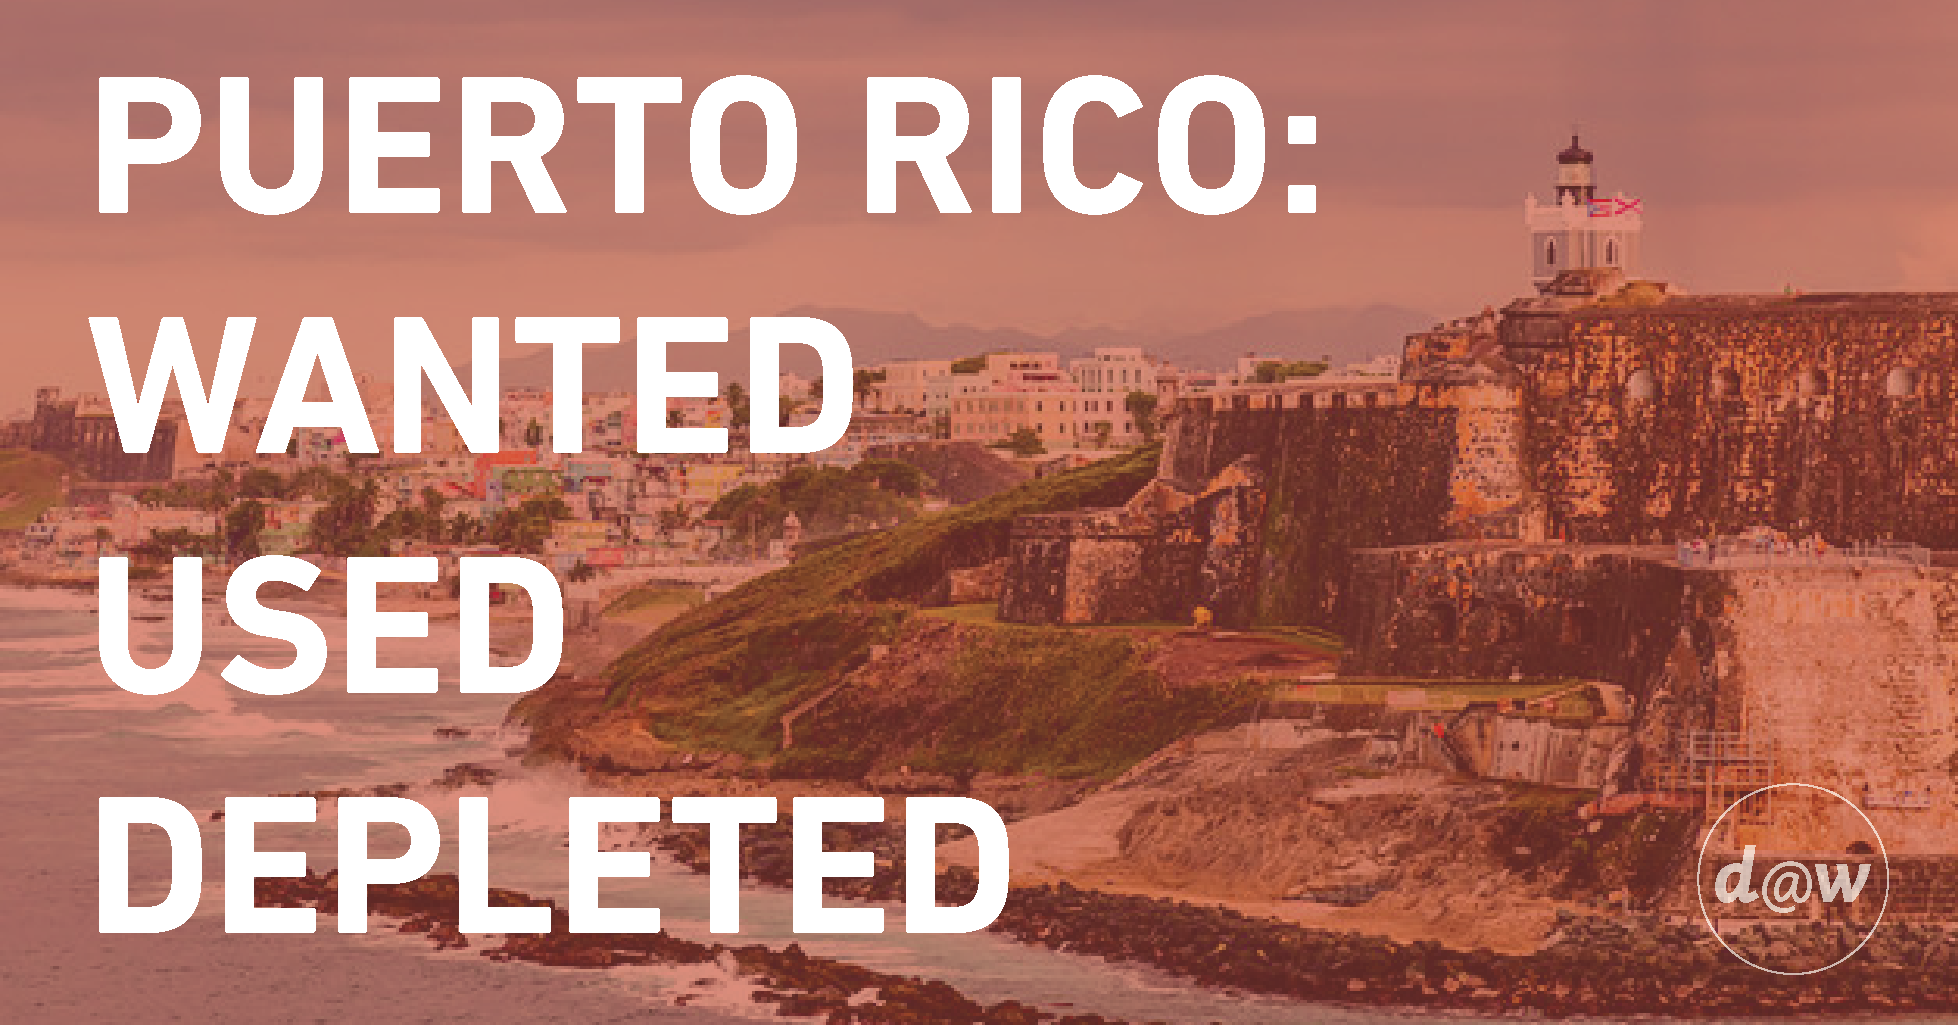 Puerto Rico Wanted Used Depleted